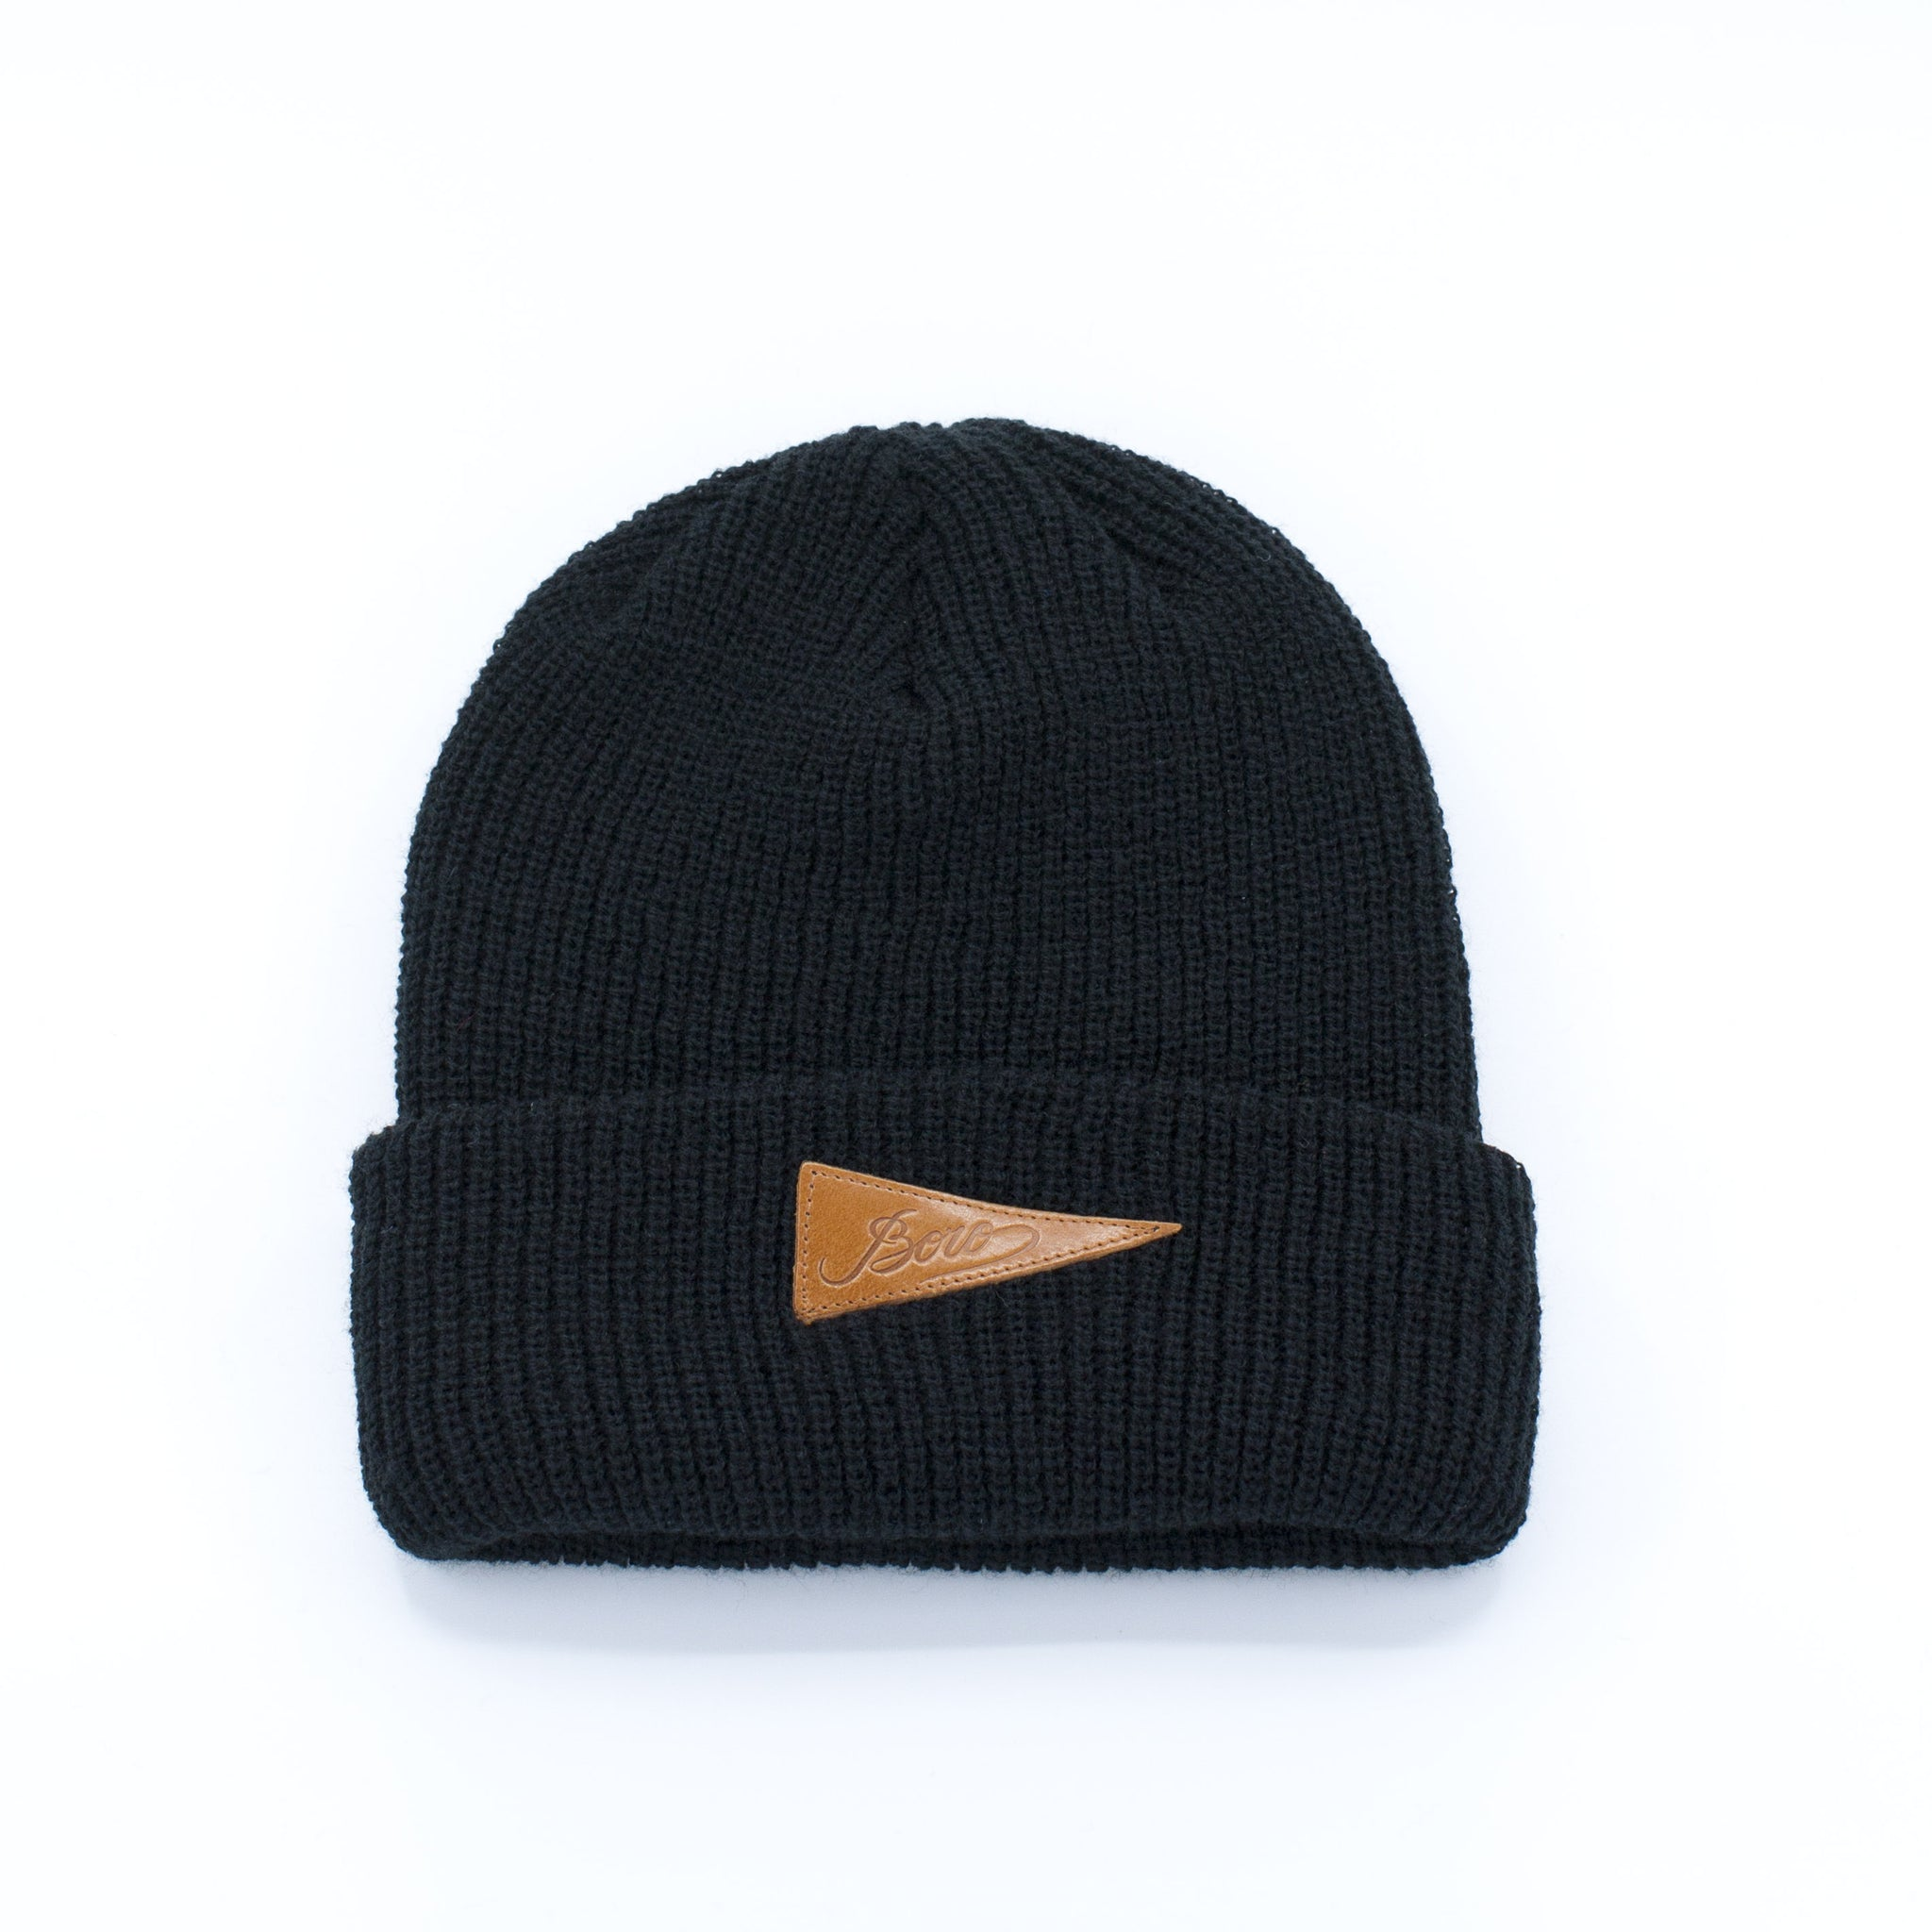 Leather patch - Short ribbed beanie